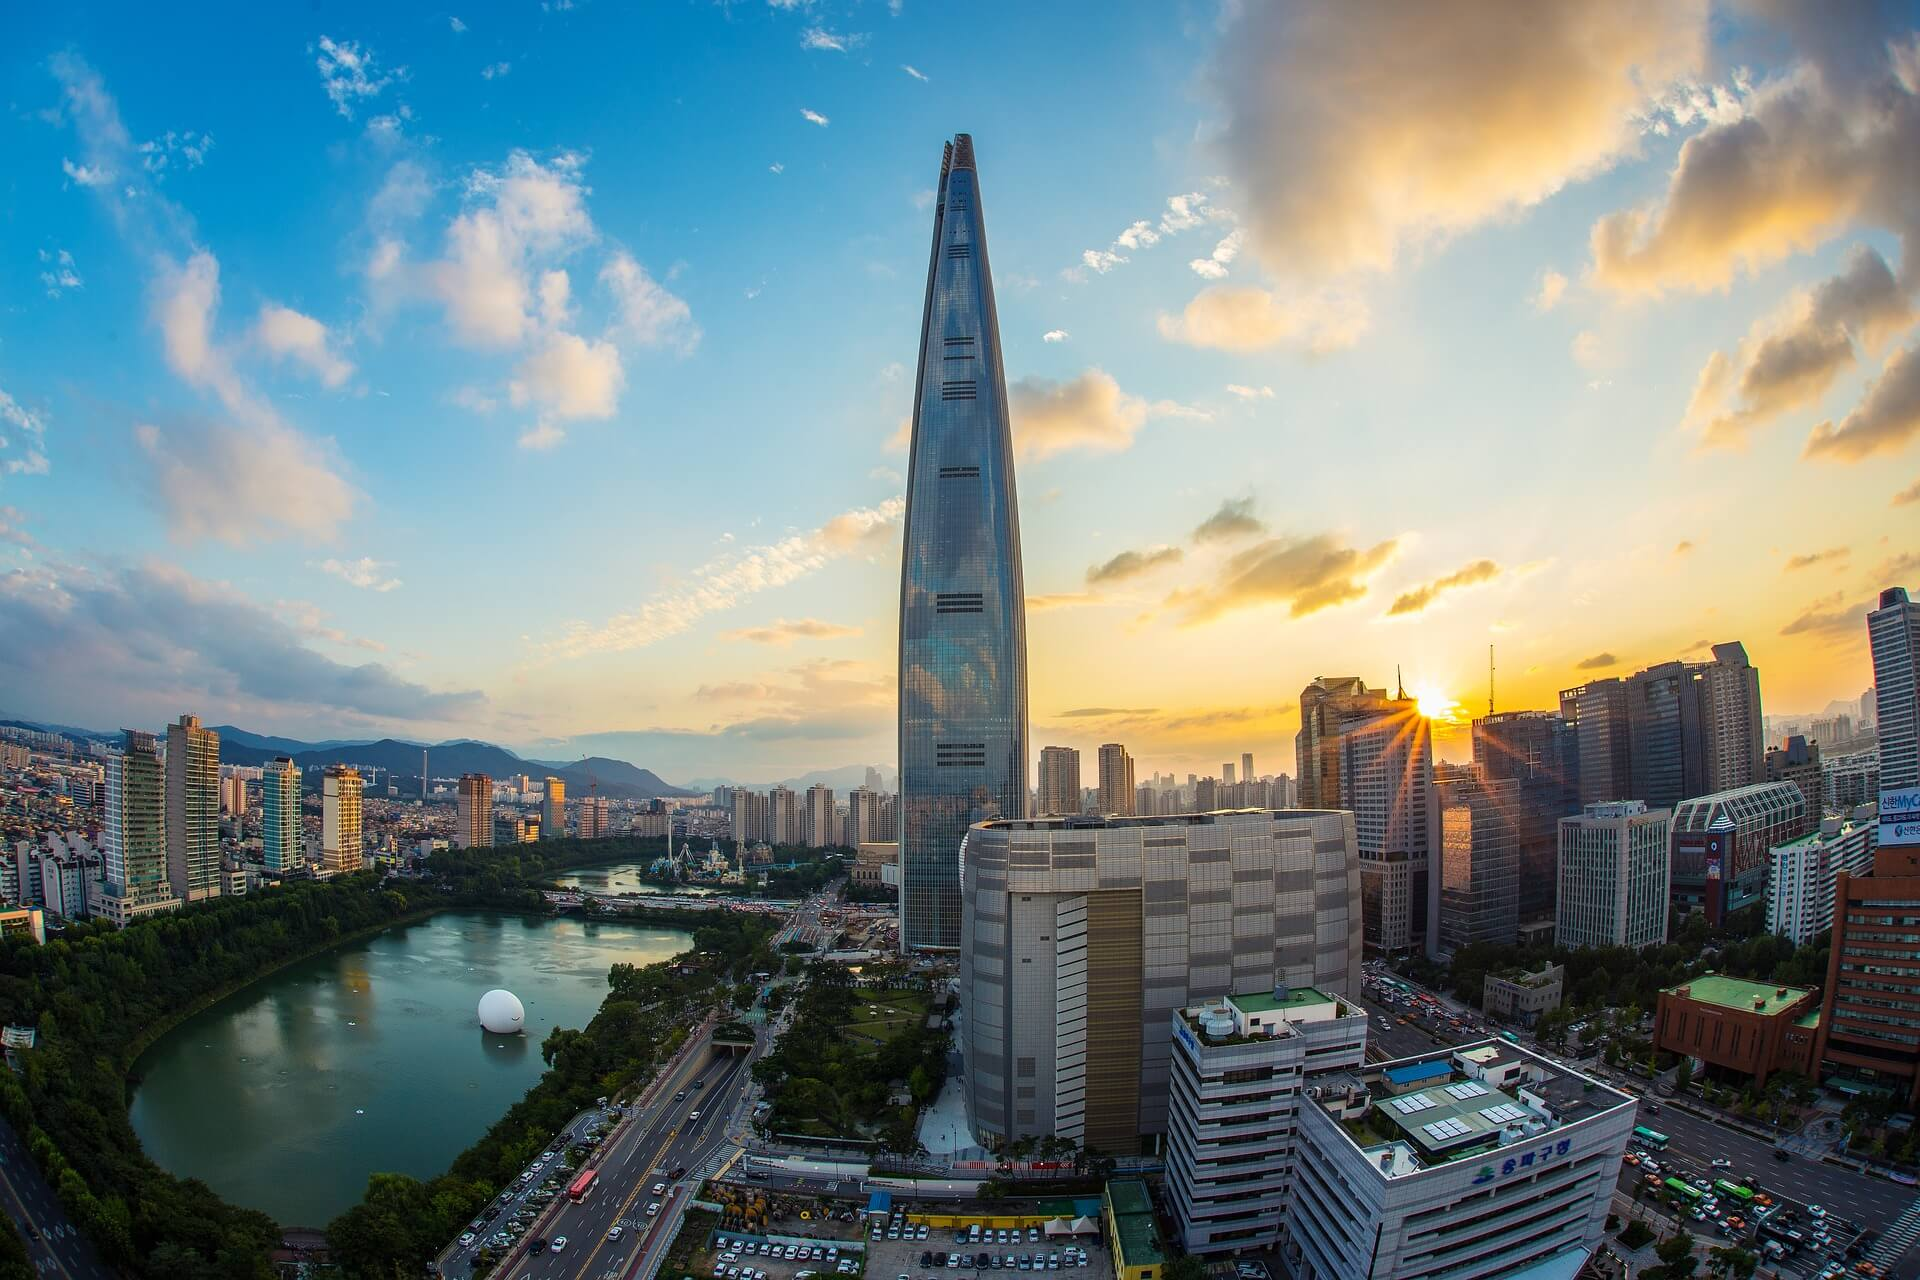 Lotte World Tower Korea Opens Prayer Room for Muslims